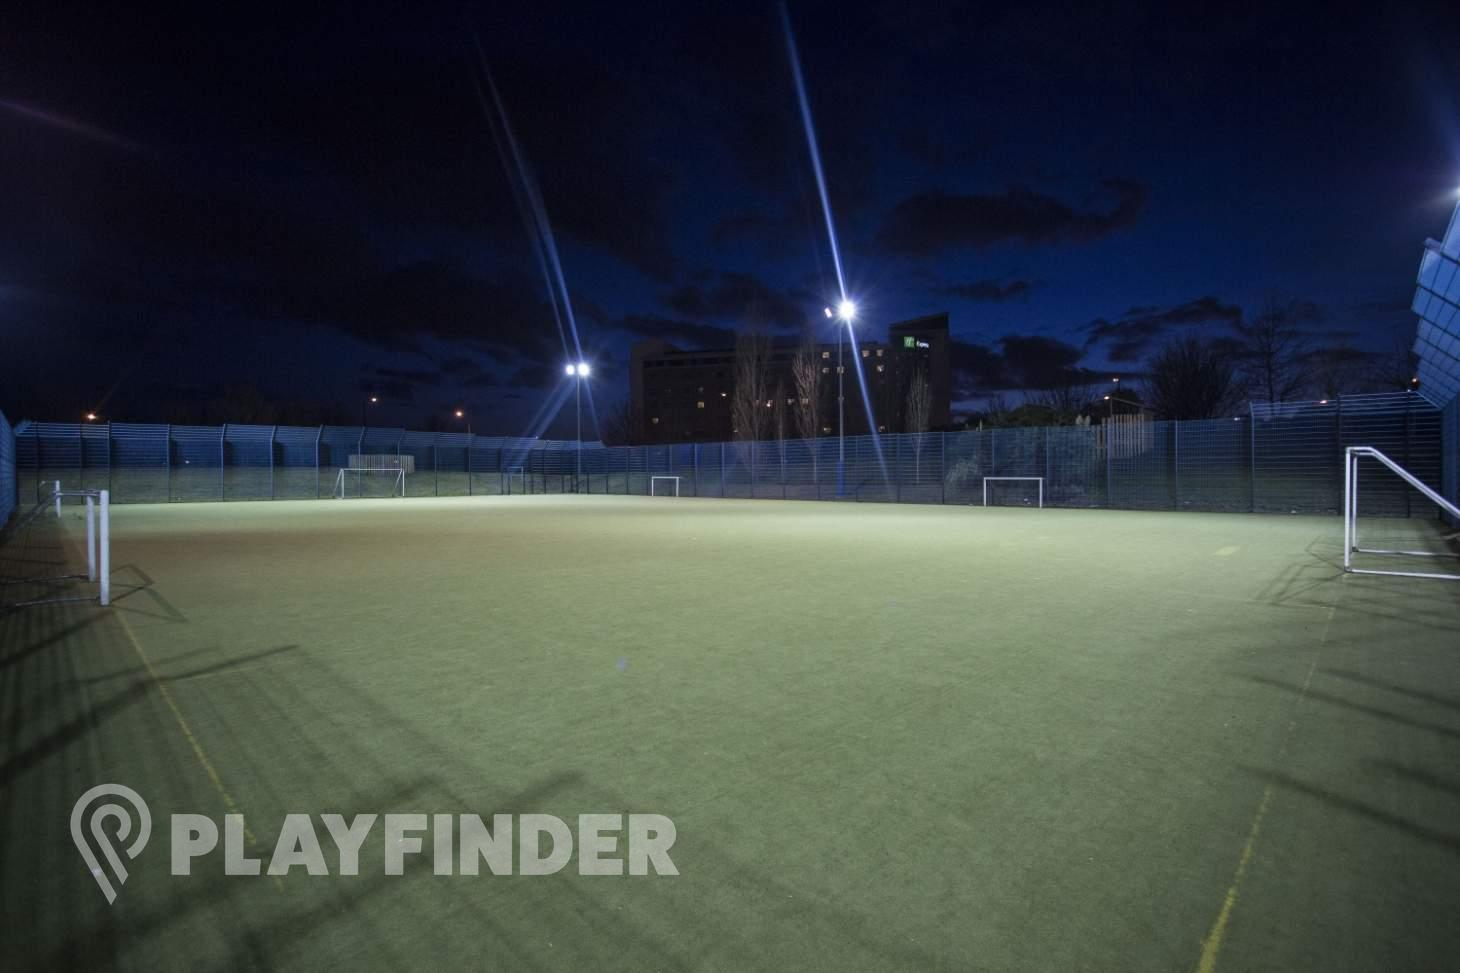 North Greenwich Astroturf 5 a side | Astroturf football pitch